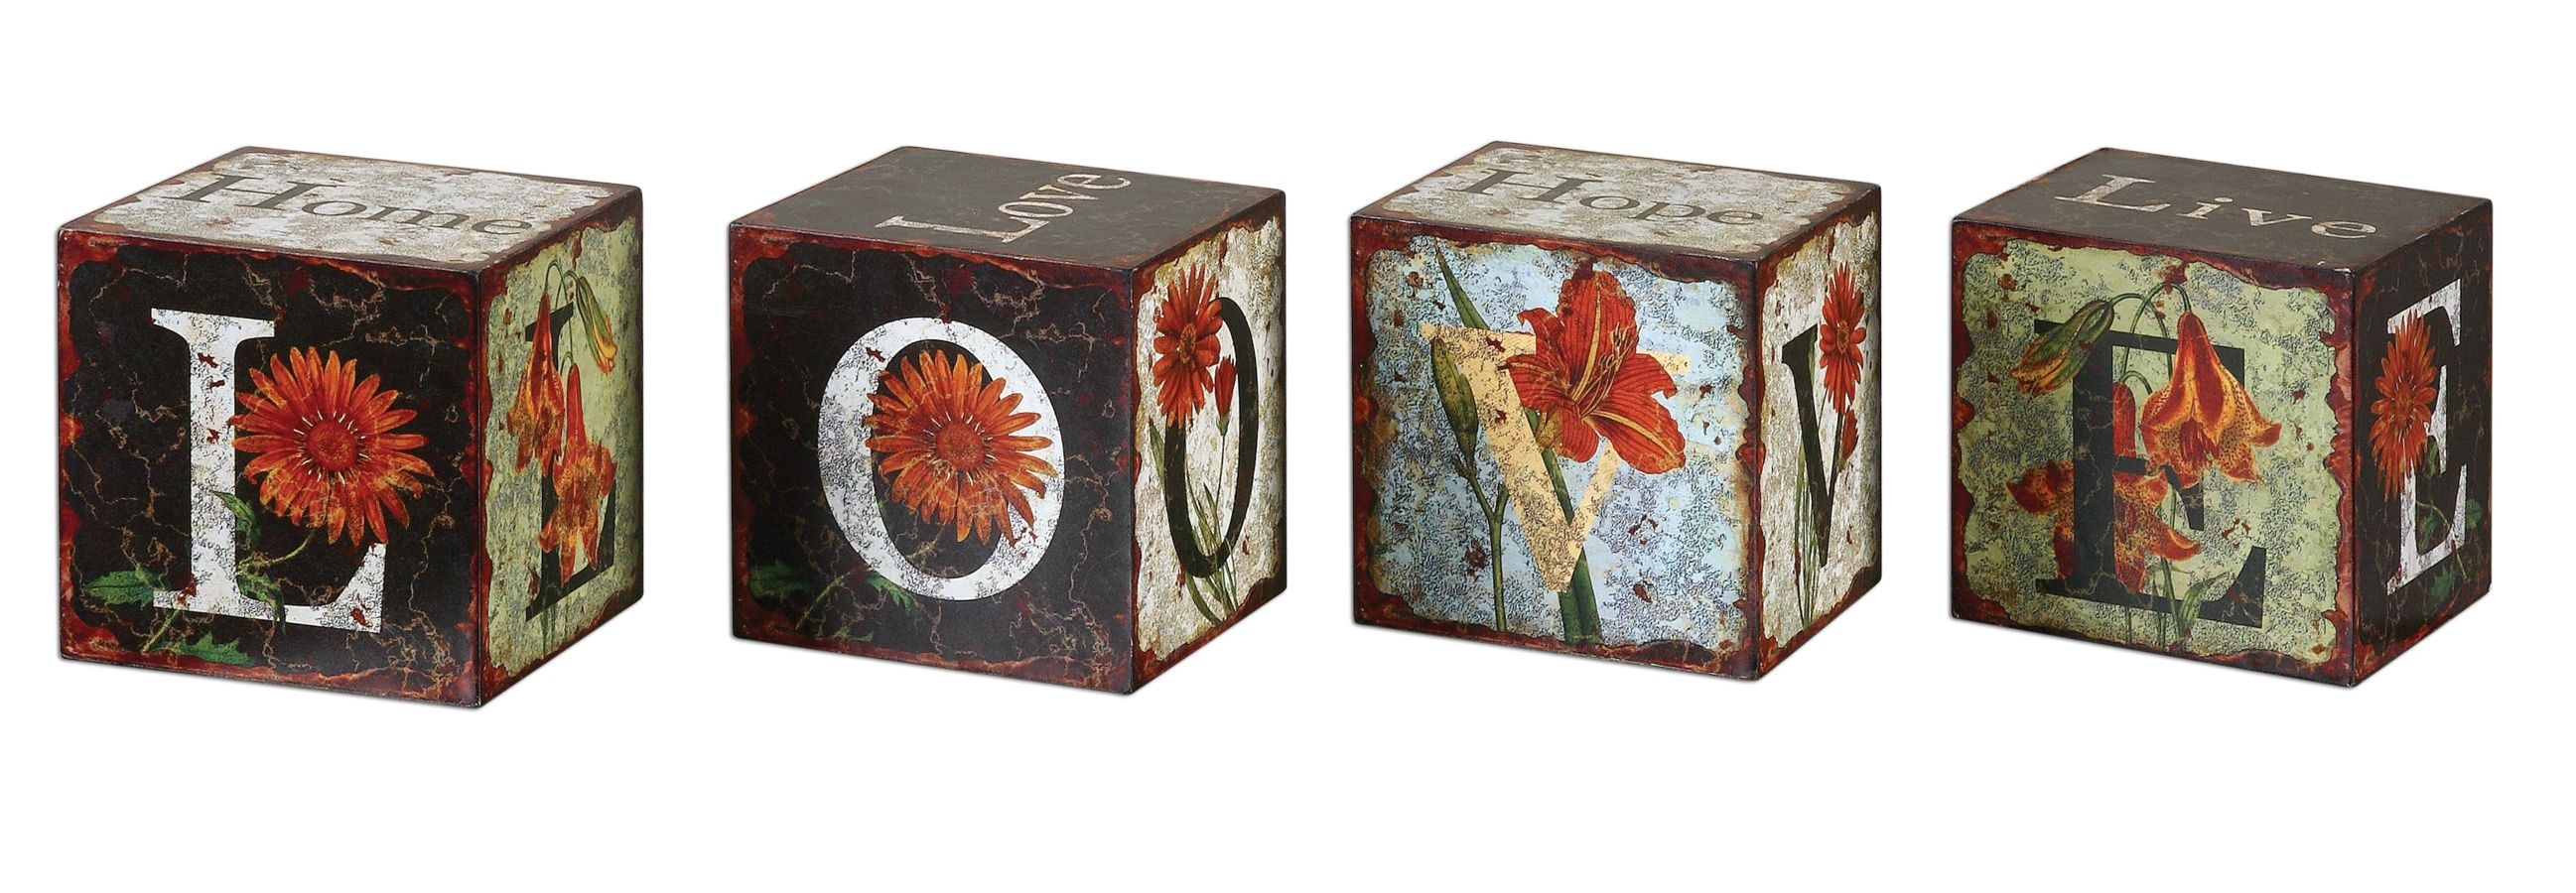 Uttermost 19540 Love Letters Decorative Boxes Set/4